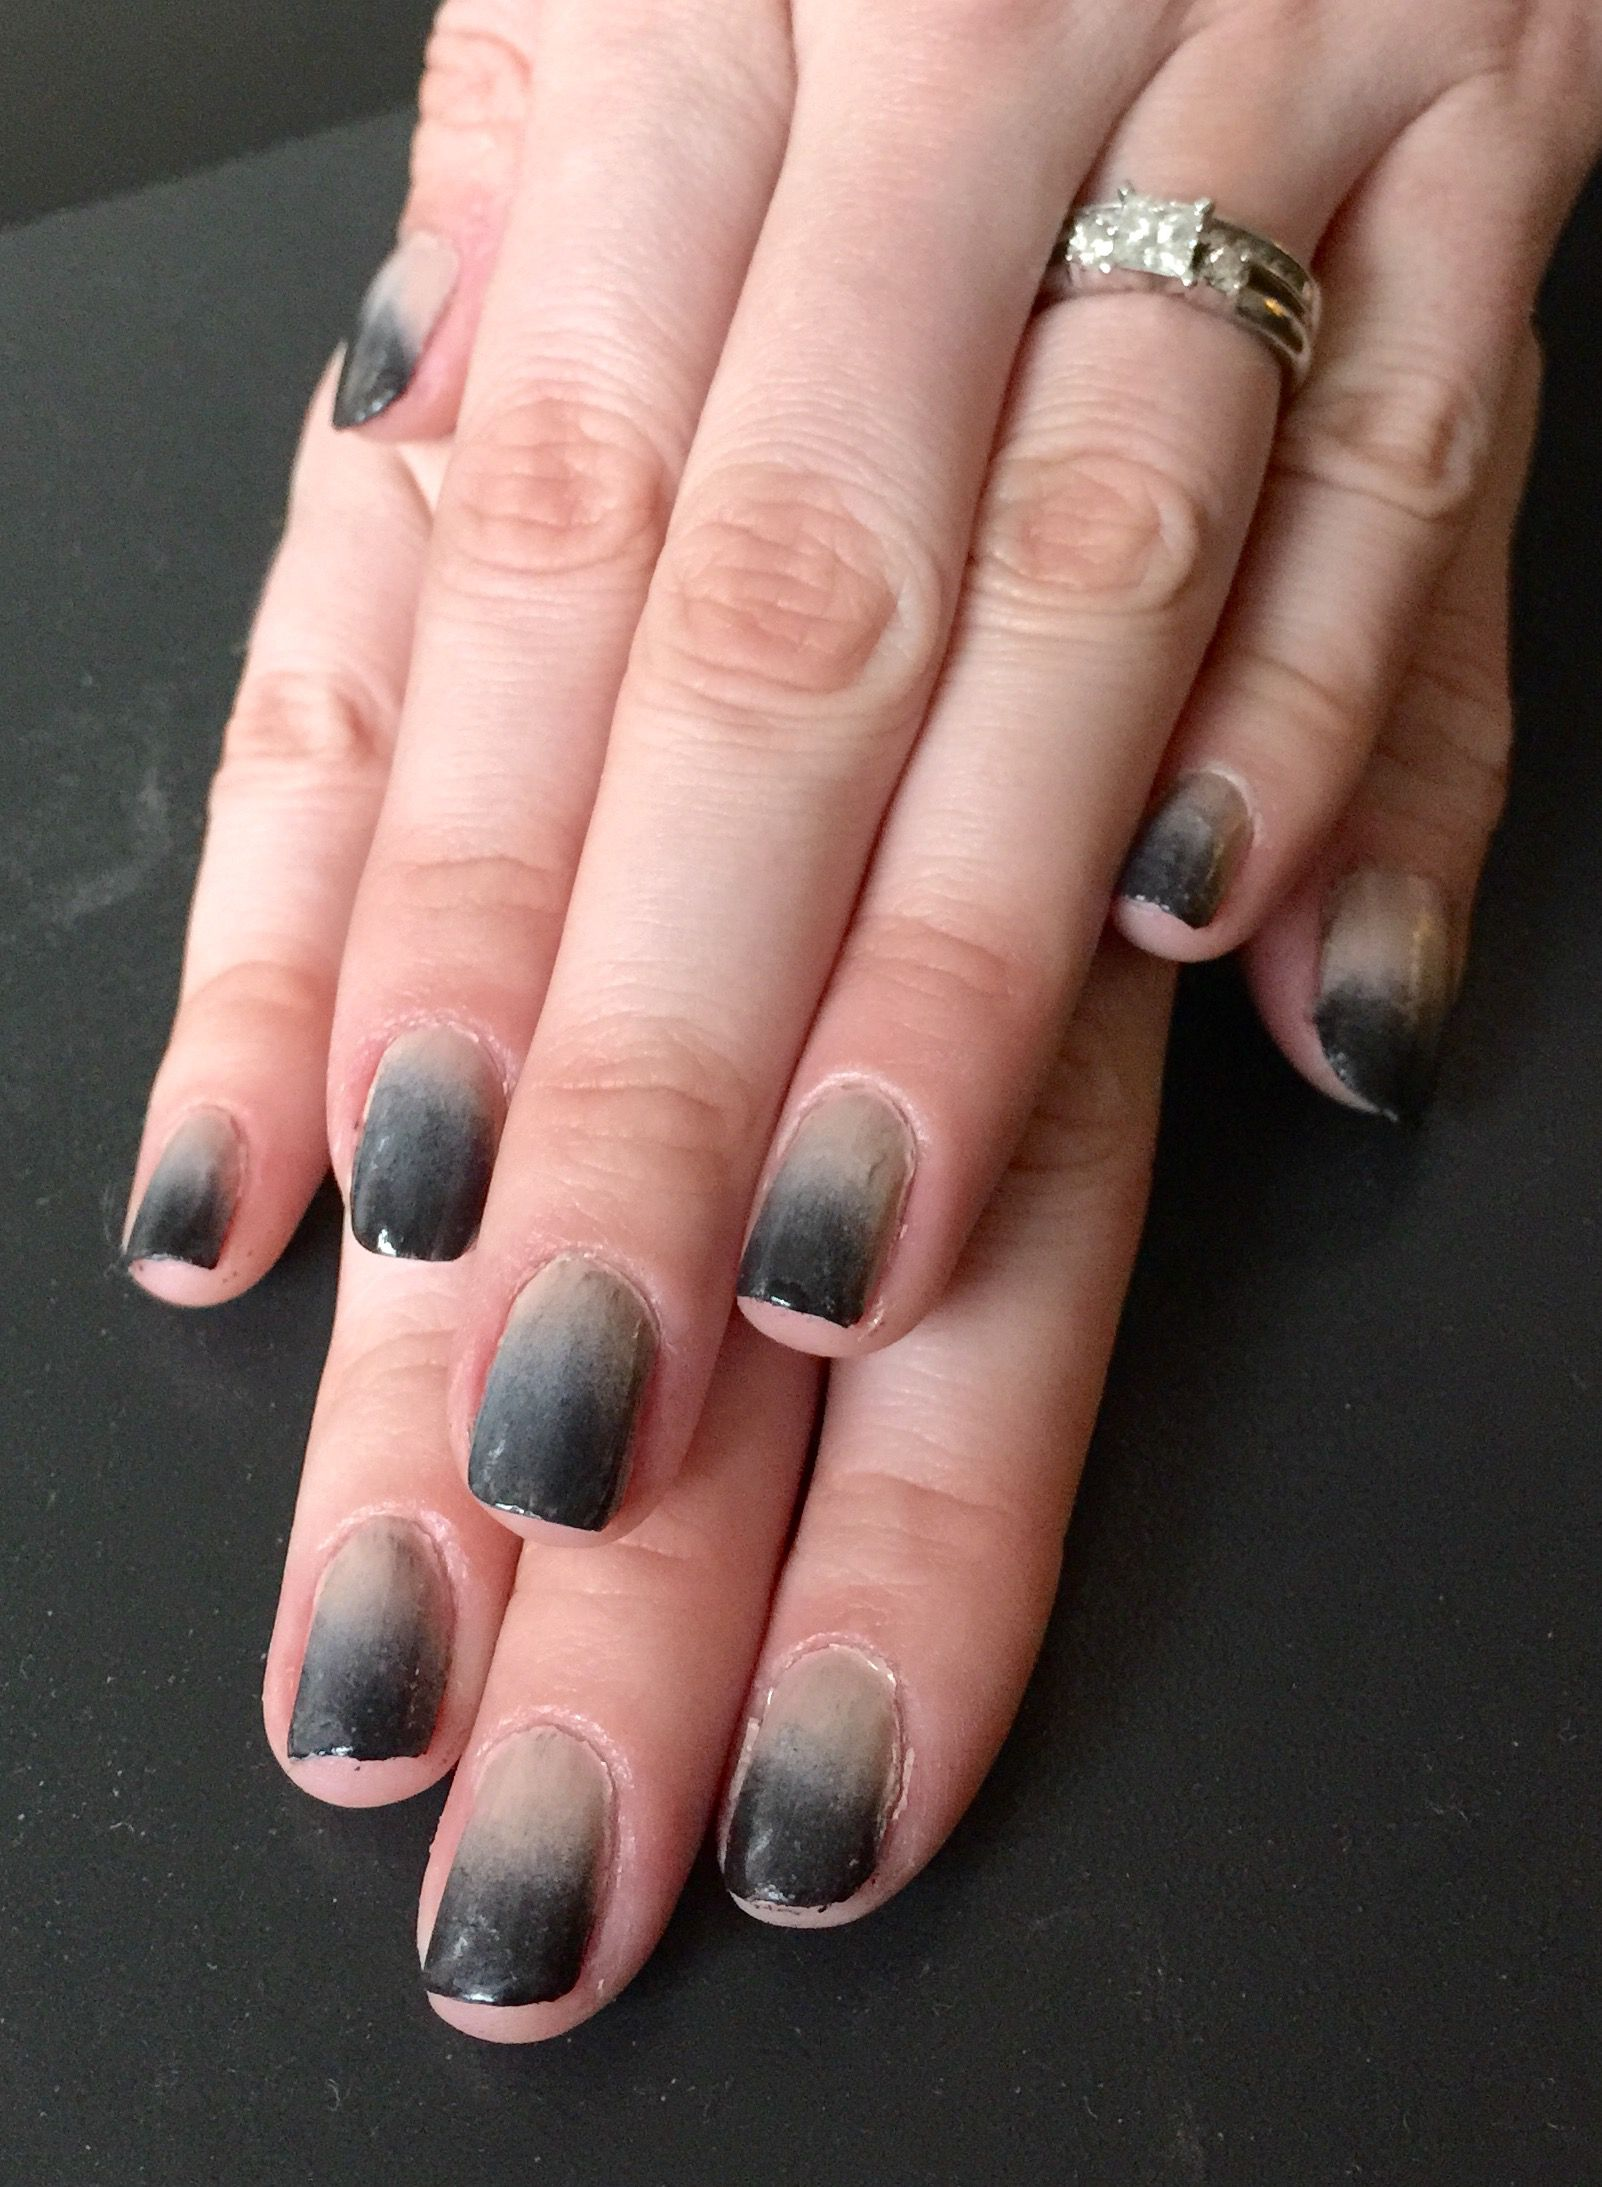 Nails This Week - Smokey Ombre - Nails For Nickels